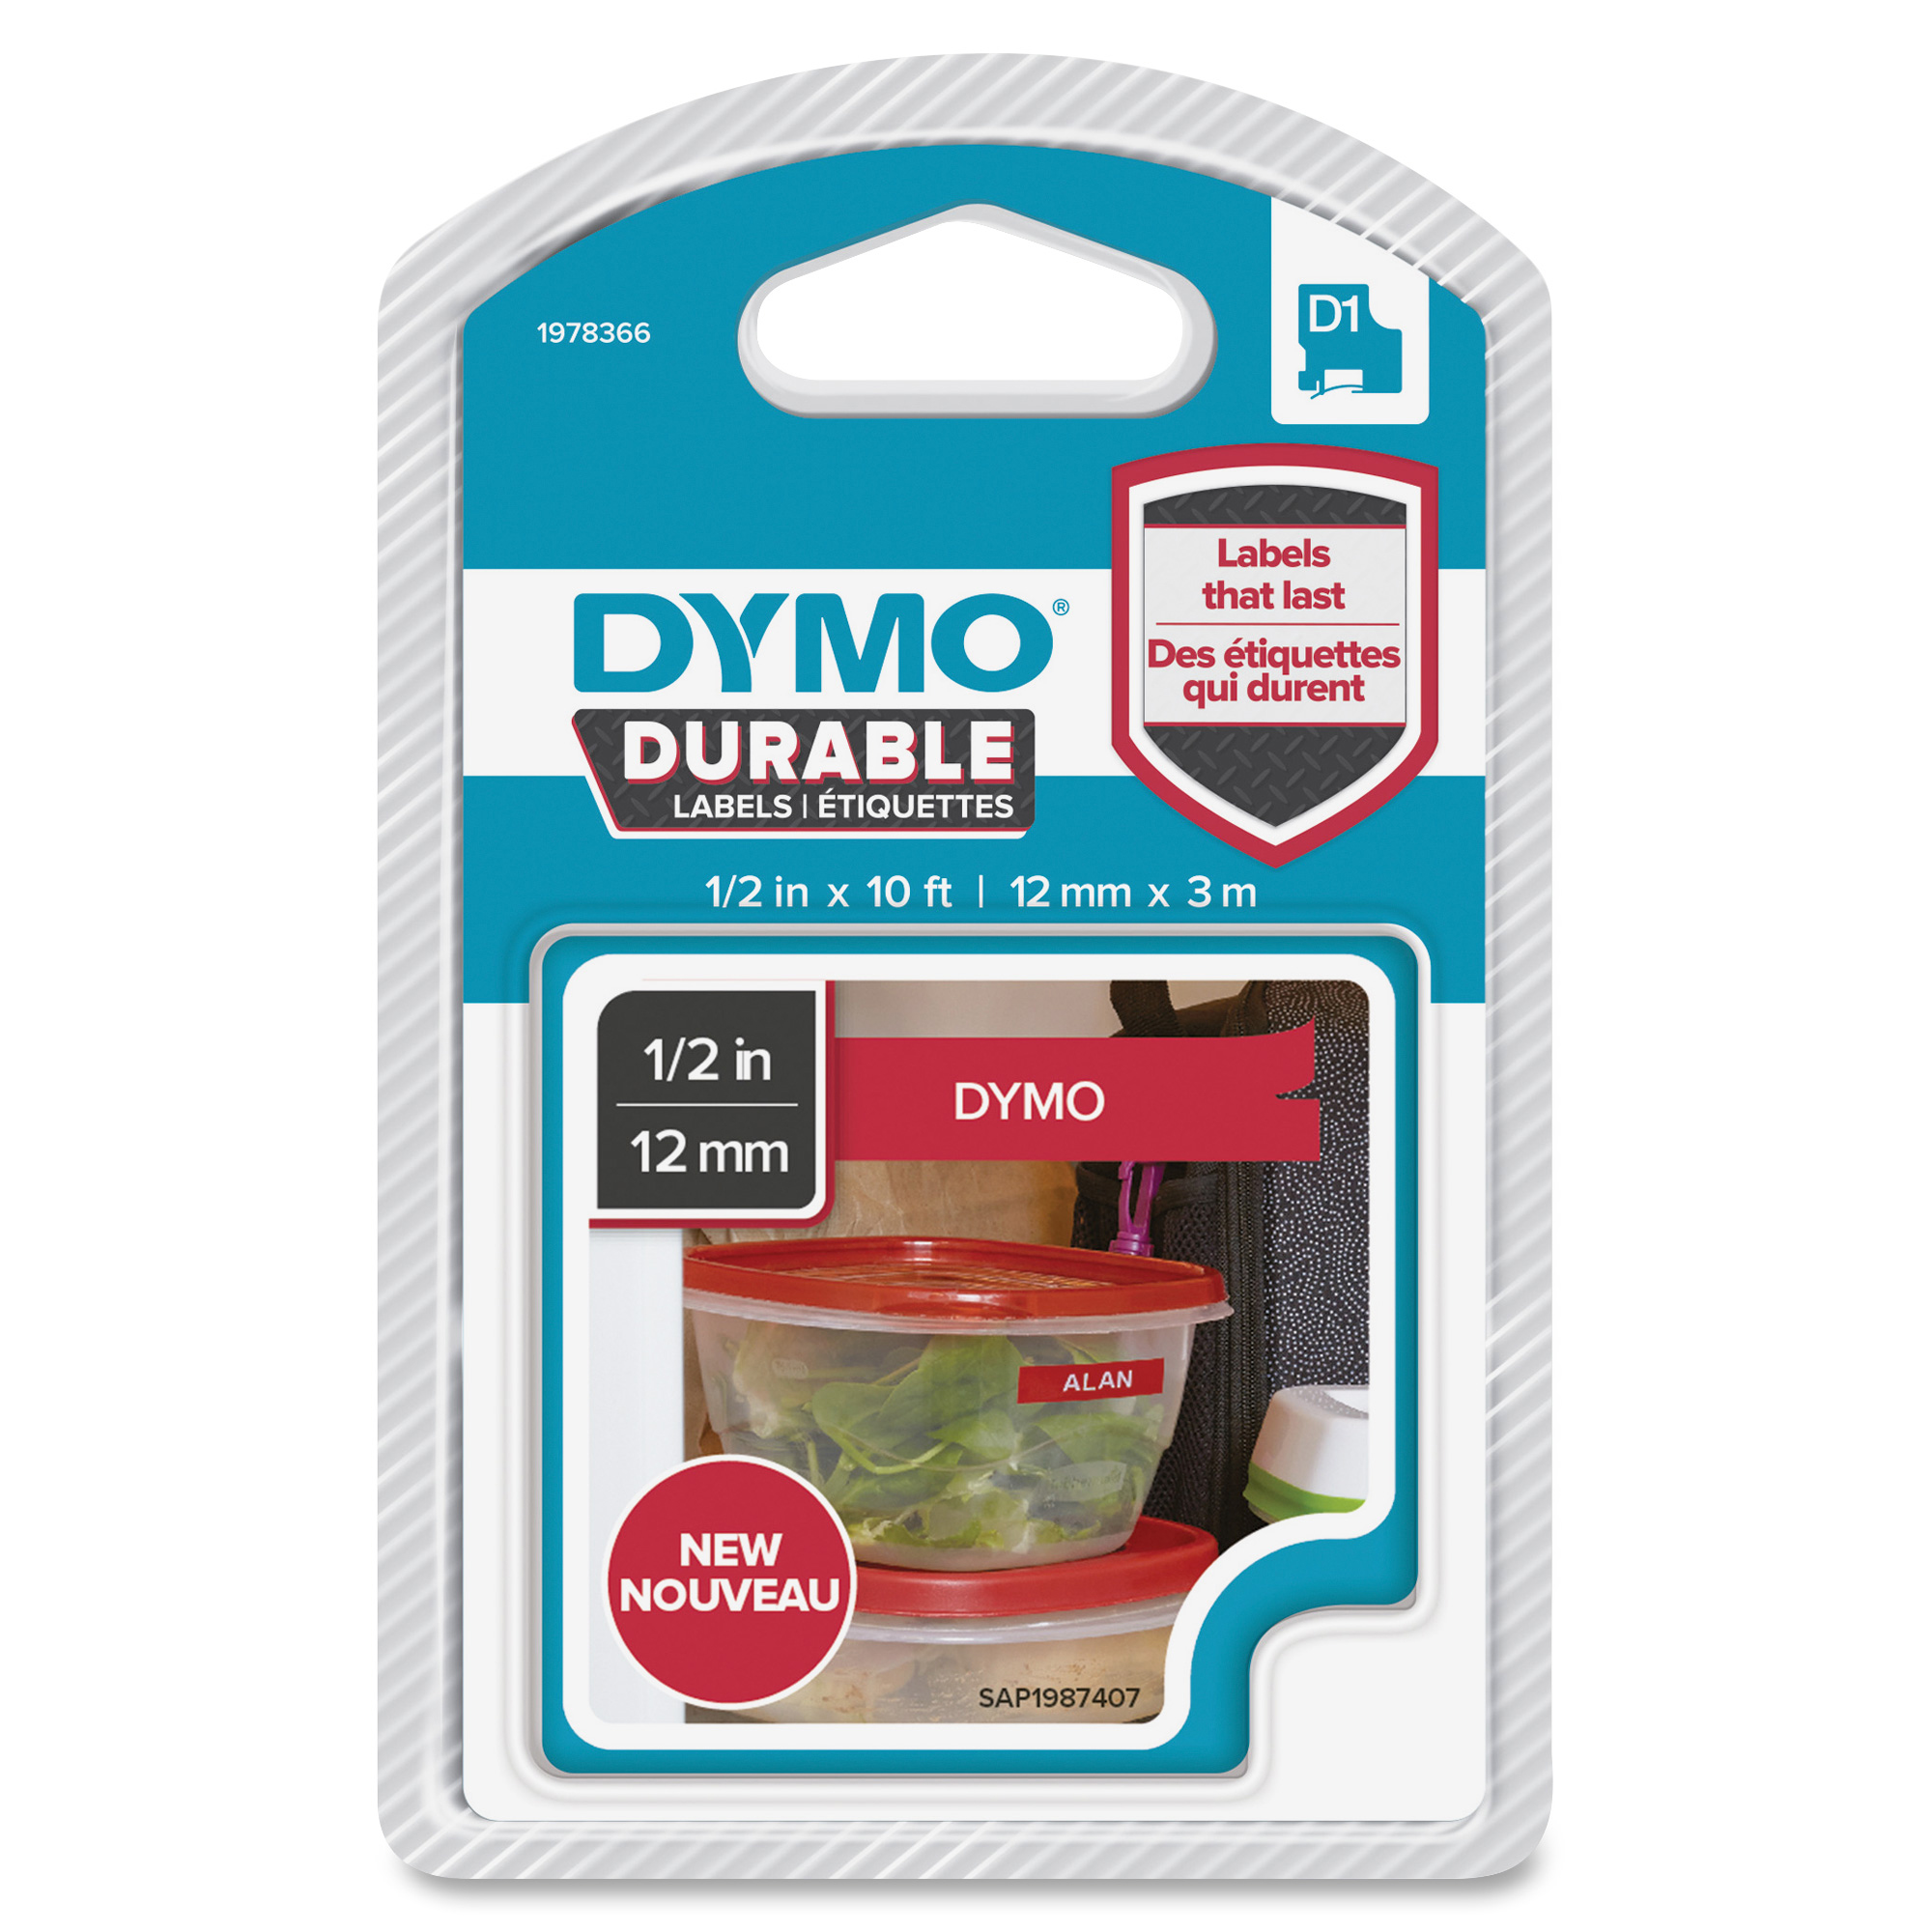 Original Dymo 1978366 White On Red 12mm x 3m D1 Durable Label Tape (1978366)